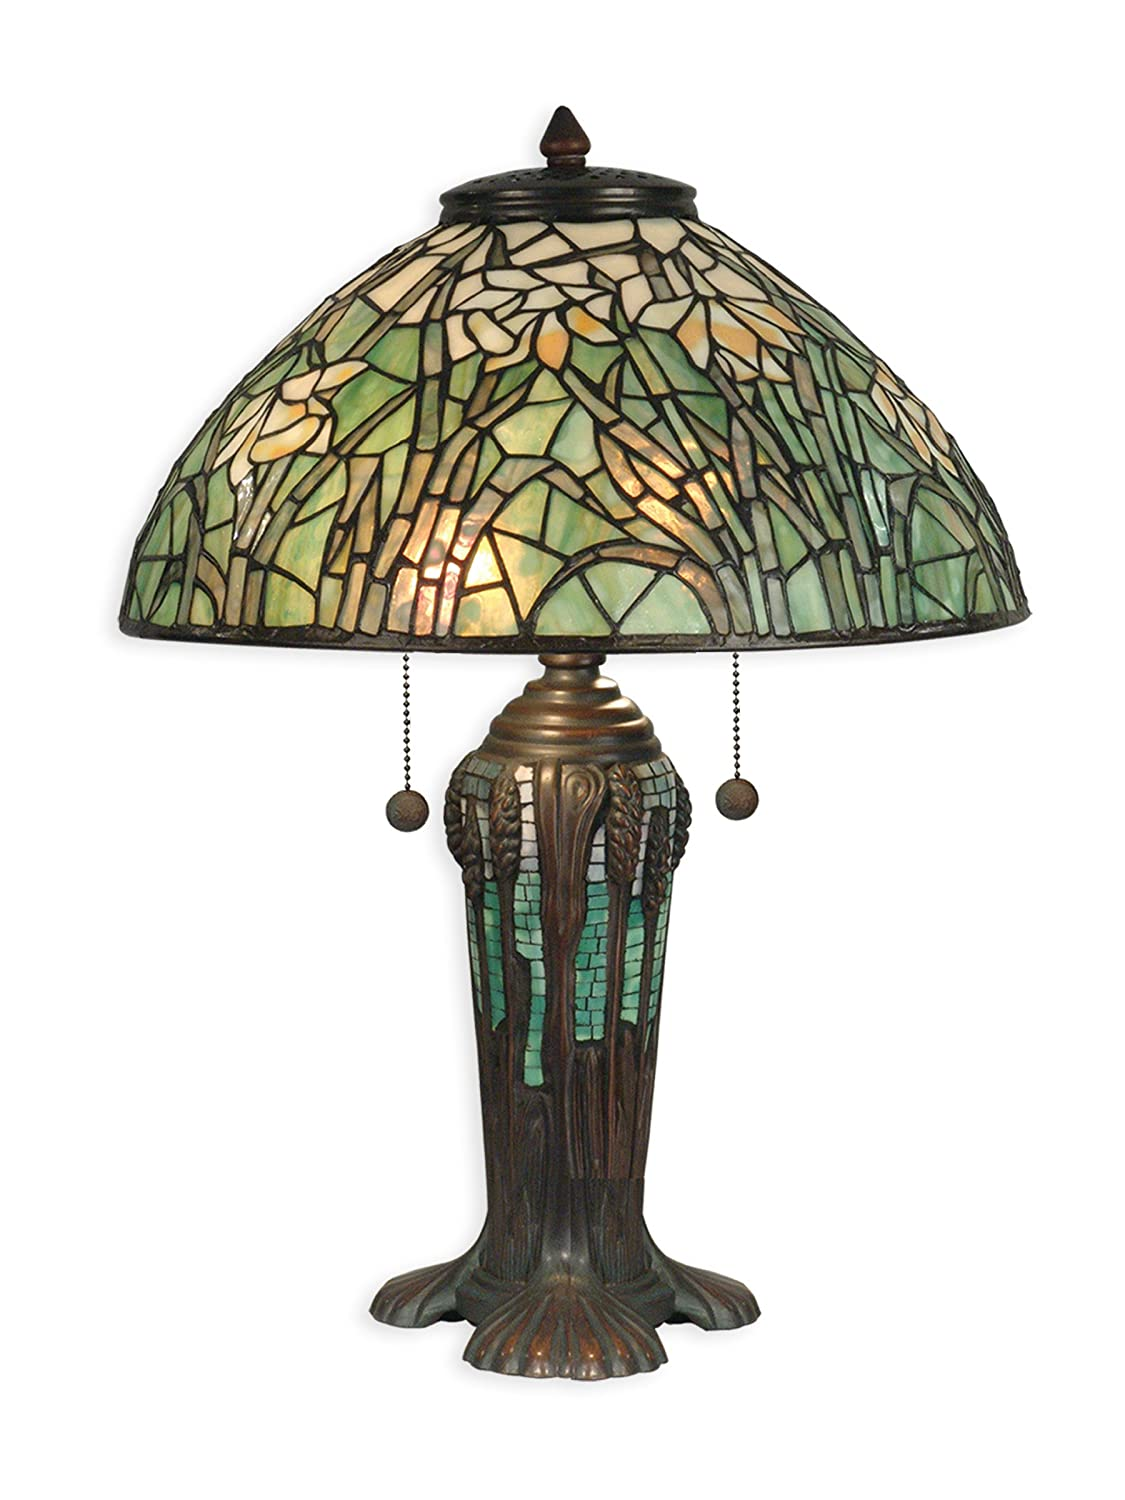 Glass shade table lamp - Dale Tiffany Tt90429 Tiffany Table Lamp Antique Bronze Verde Green And Art Glass Shade Amazon Com